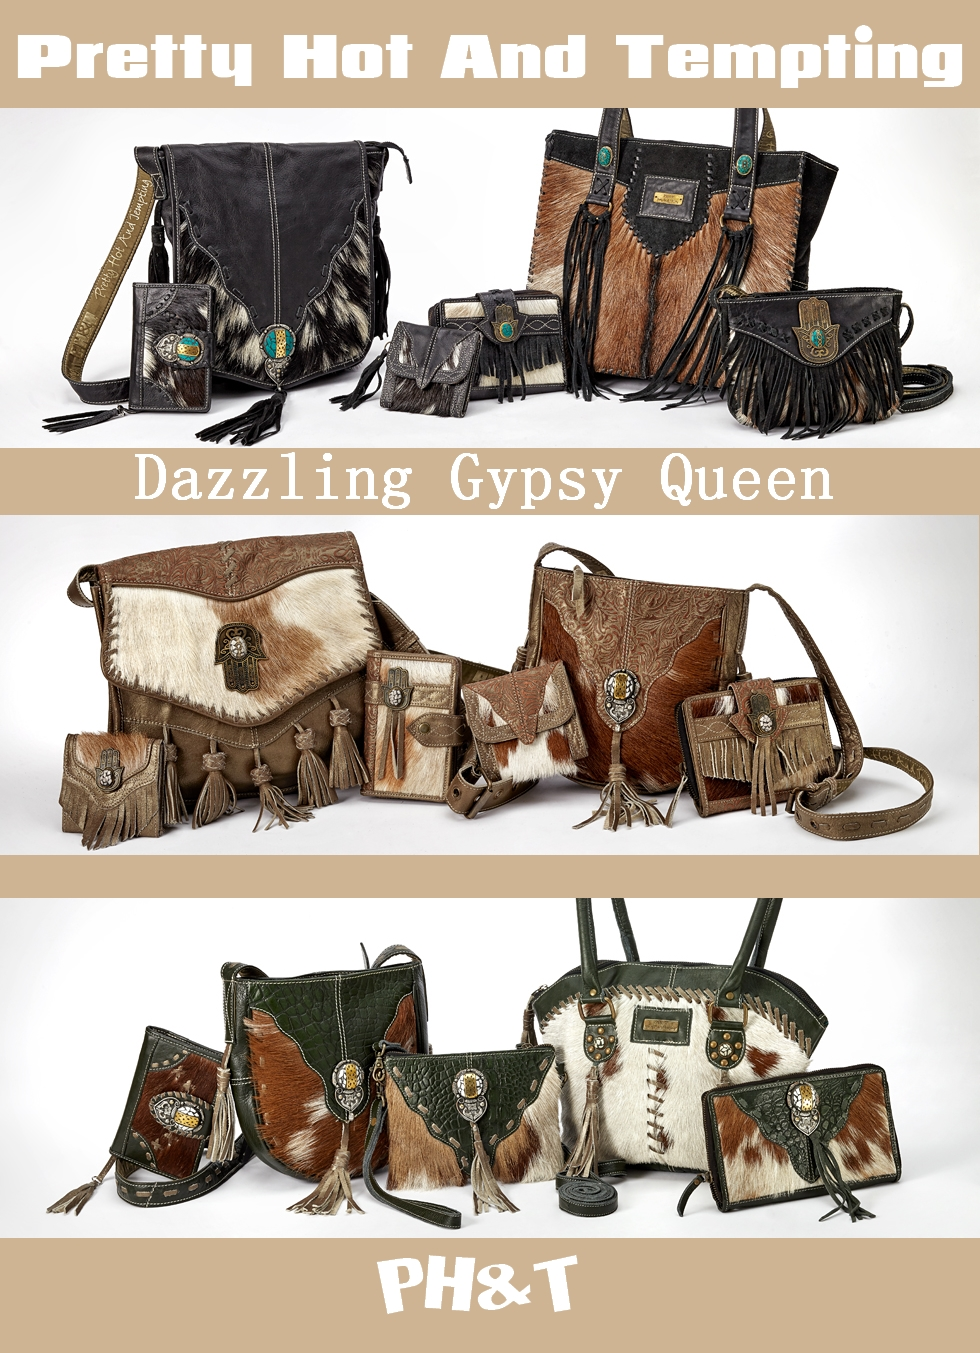 PH&T - Pretty Hot And Tempting @ Dazzling Gypsy Queen